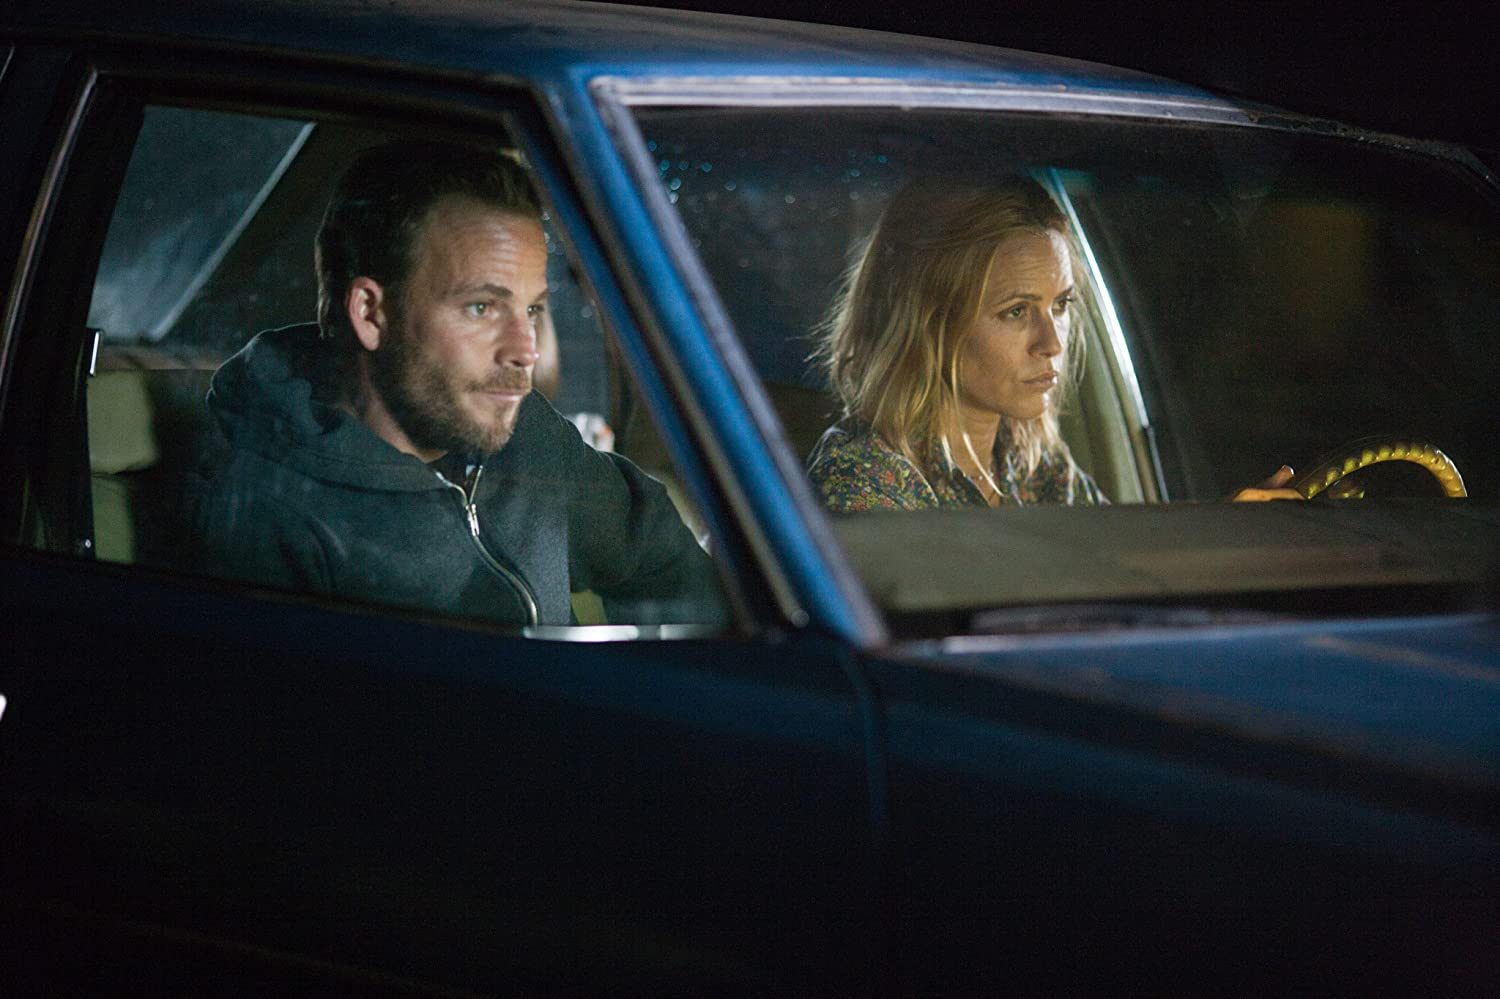 Stephen Dorff and Maria Bello in Carjacked (2011)